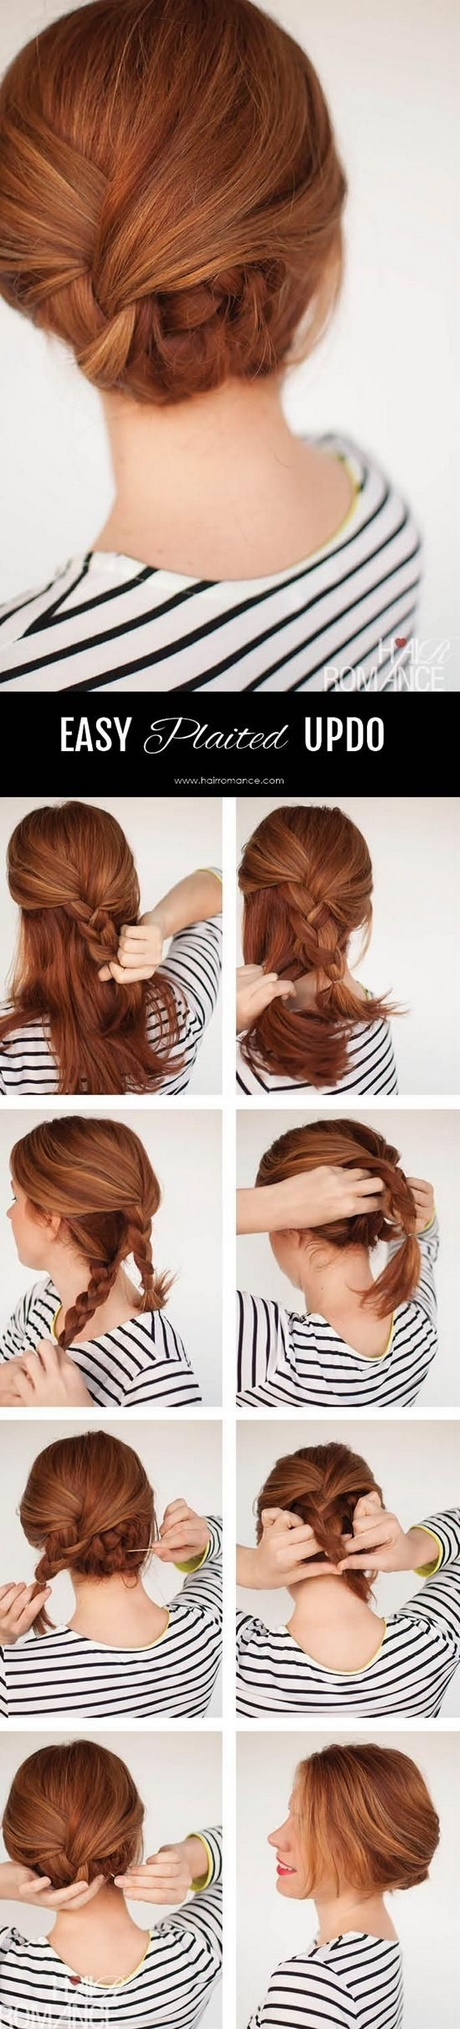 Hairstyles Idiots Guides Kylee Bond 9781615647040